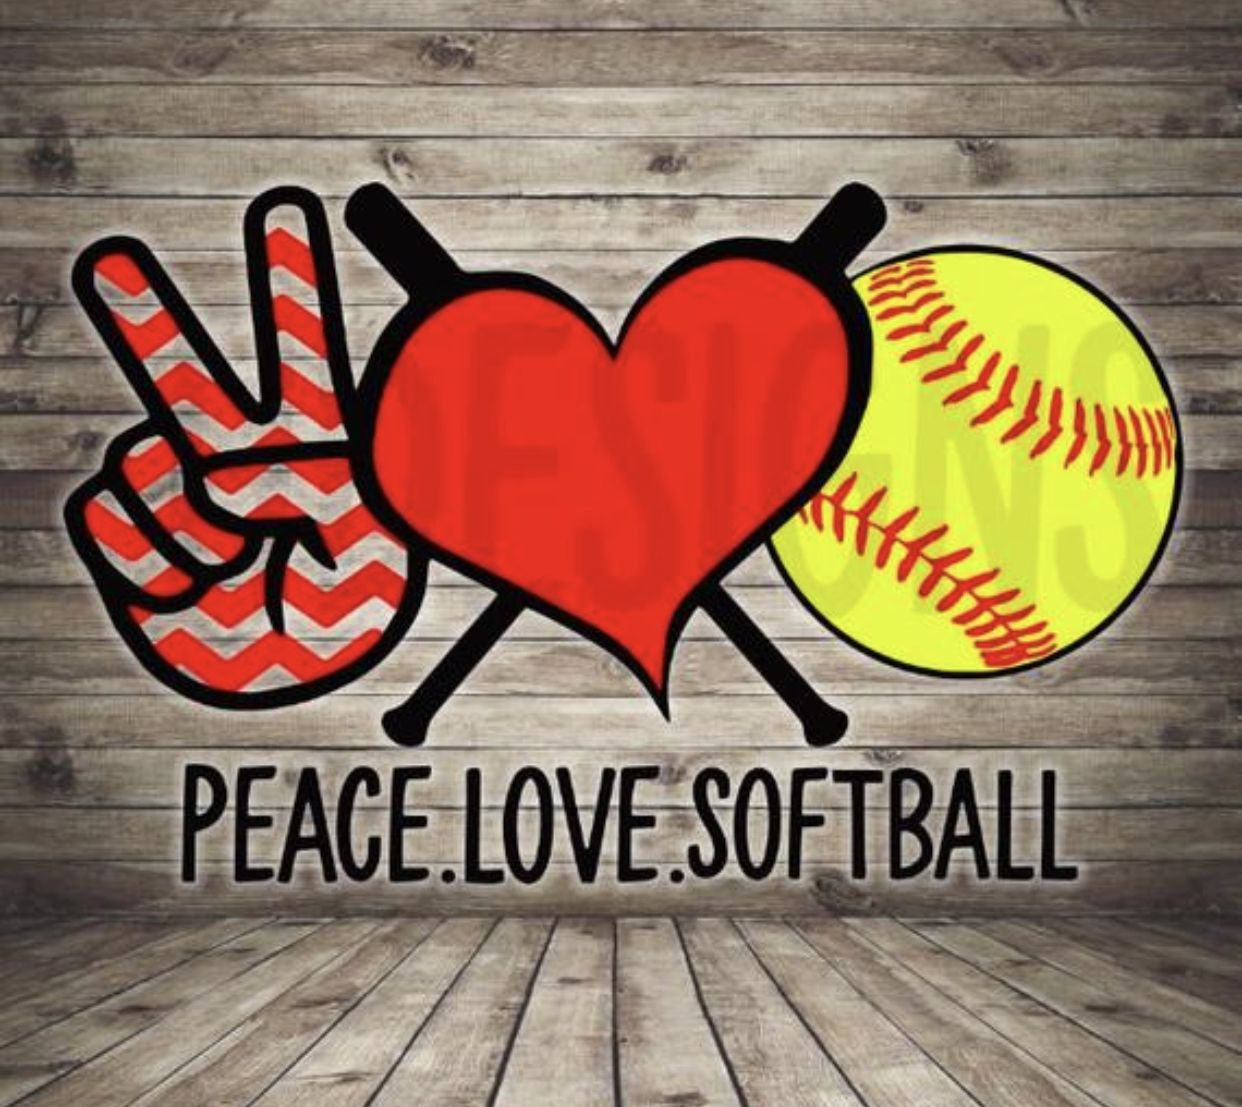 Download Peace Love Softball SVG in 2020 | Peace, love, Softball, Peace